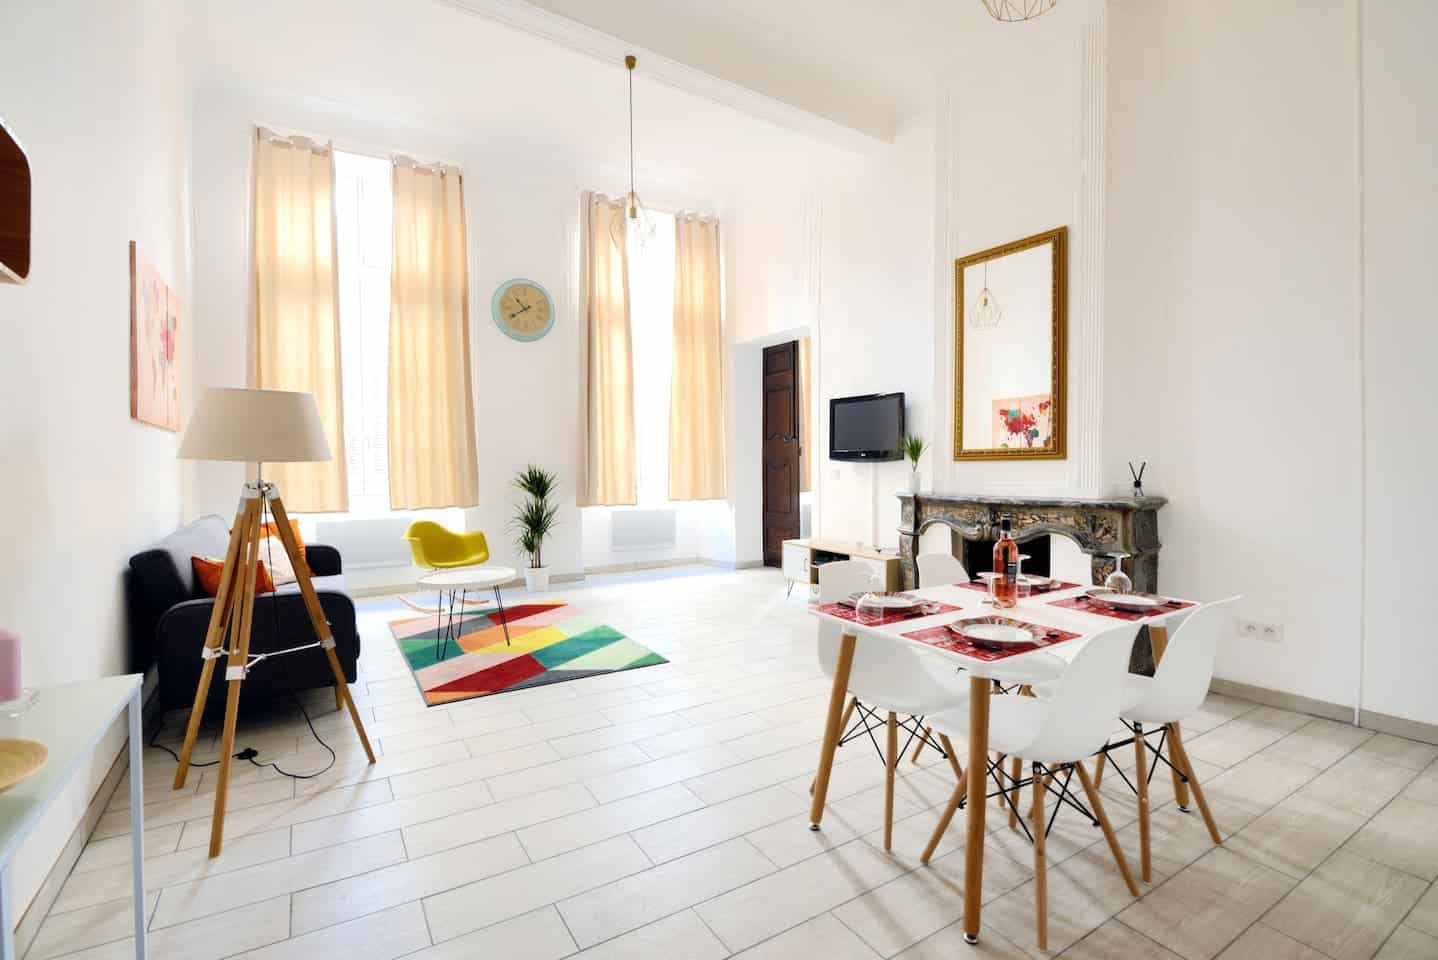 Image of Airbnb rental in Aix-en-Provence, France